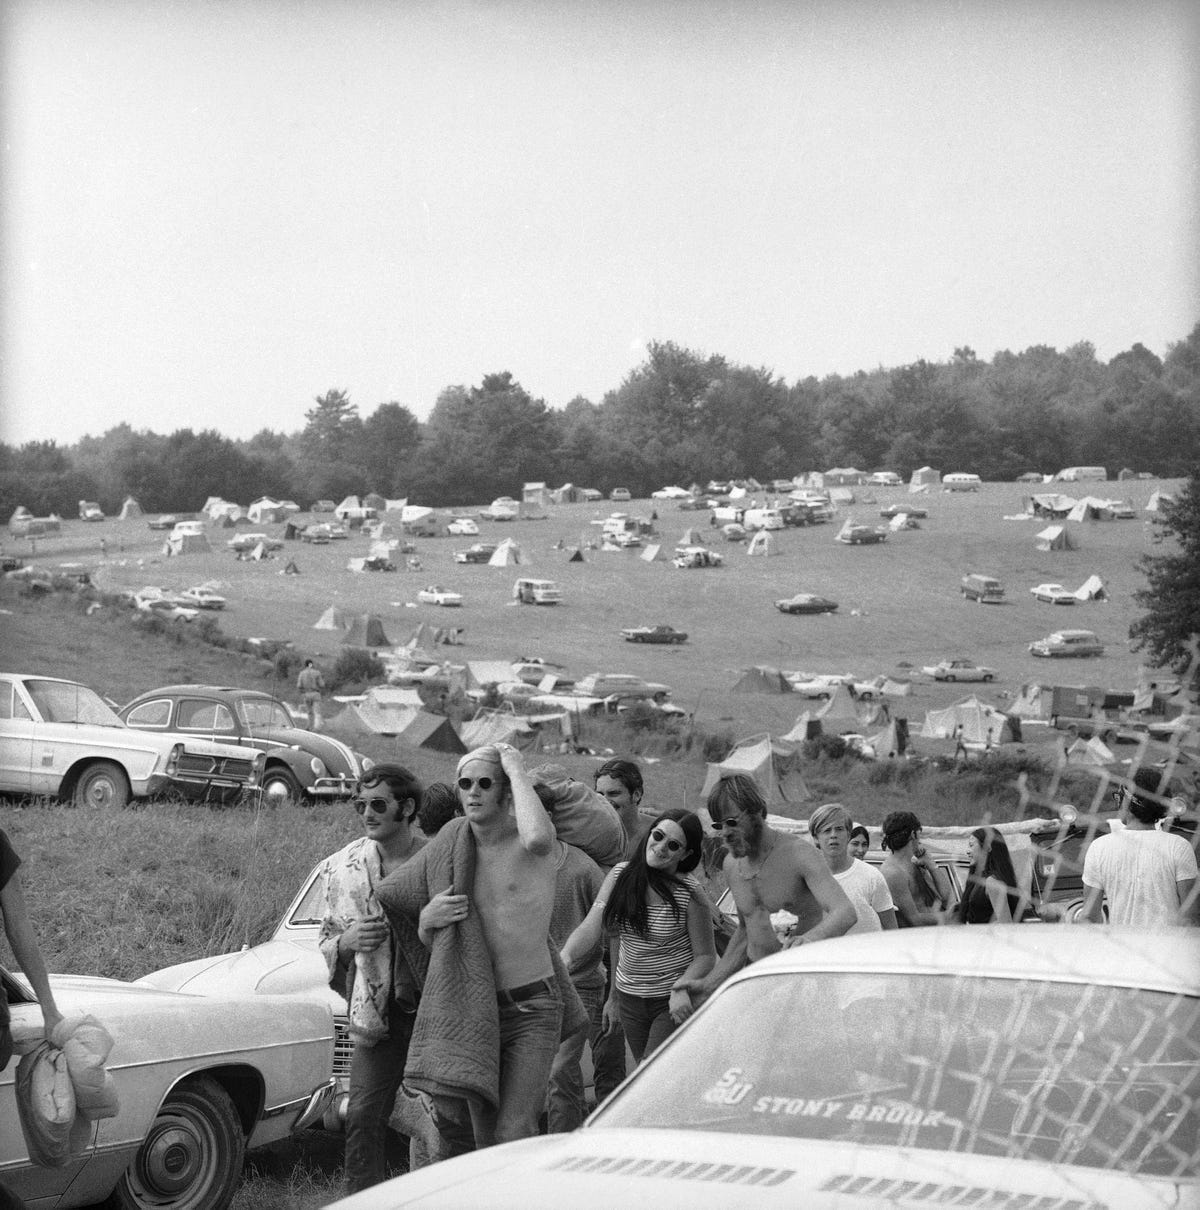 46 Years Ago Today, 500,000 People Descended On A Farm For The Greatest Music Festival Of All Time But-it-didnt-kill-the-vibes-here-attendees-leave-the-grounds-after-spending-a-rainy-night